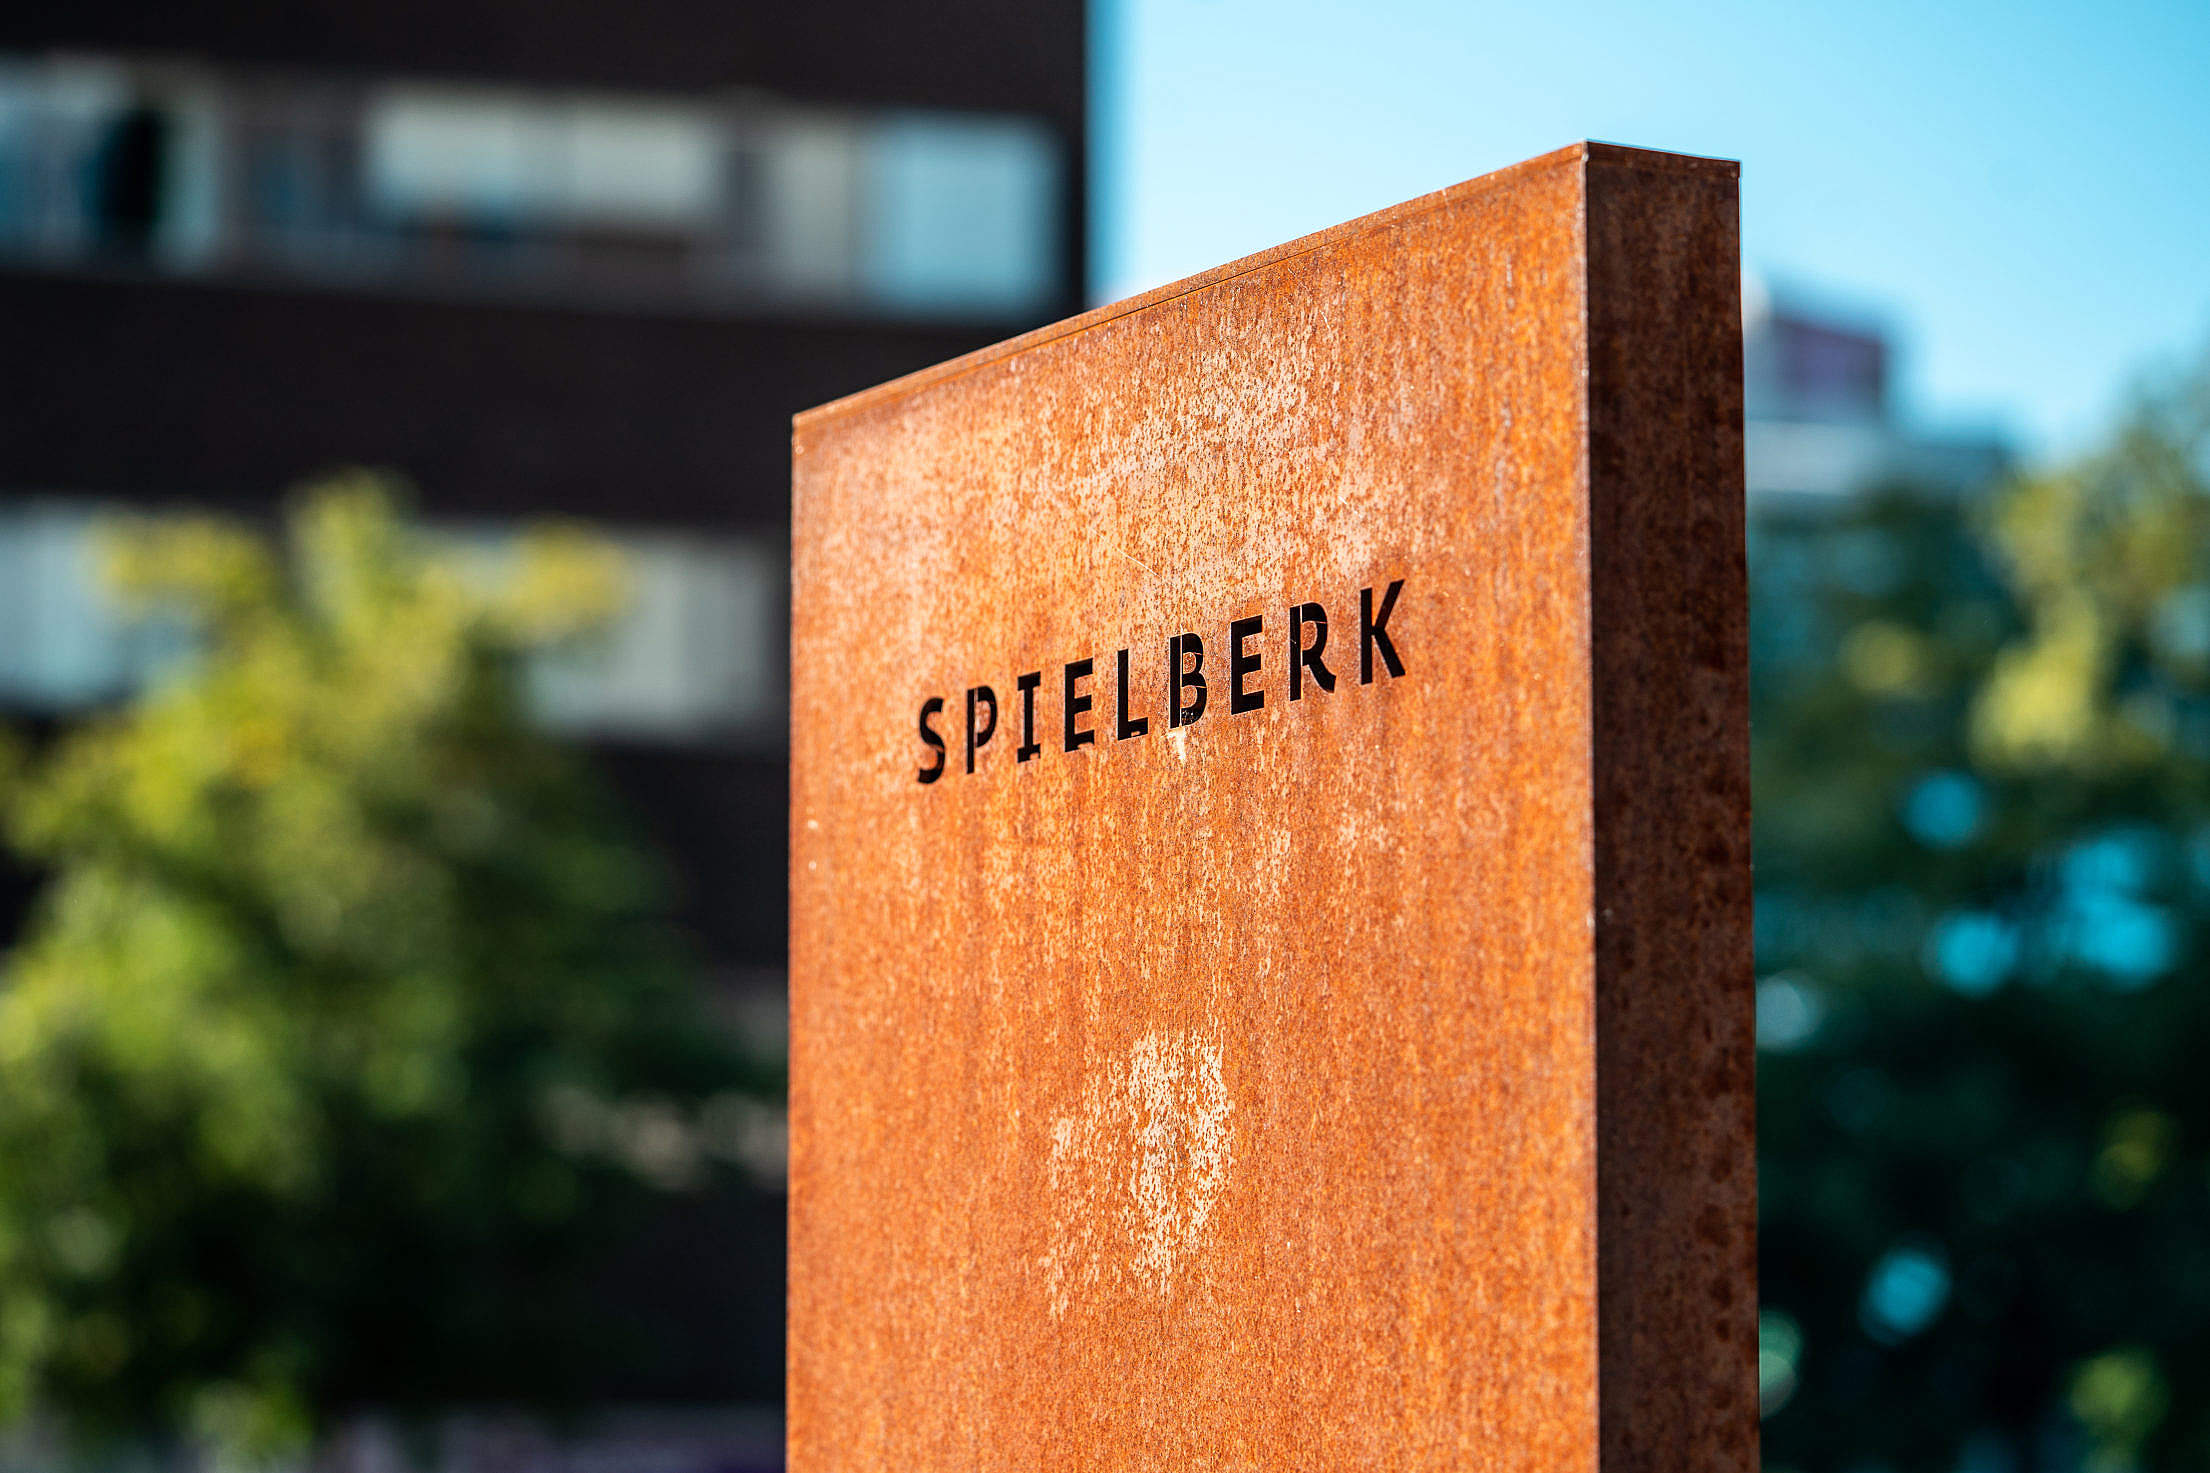 Download Spielberk Office Park, Brno Free Stock Photo